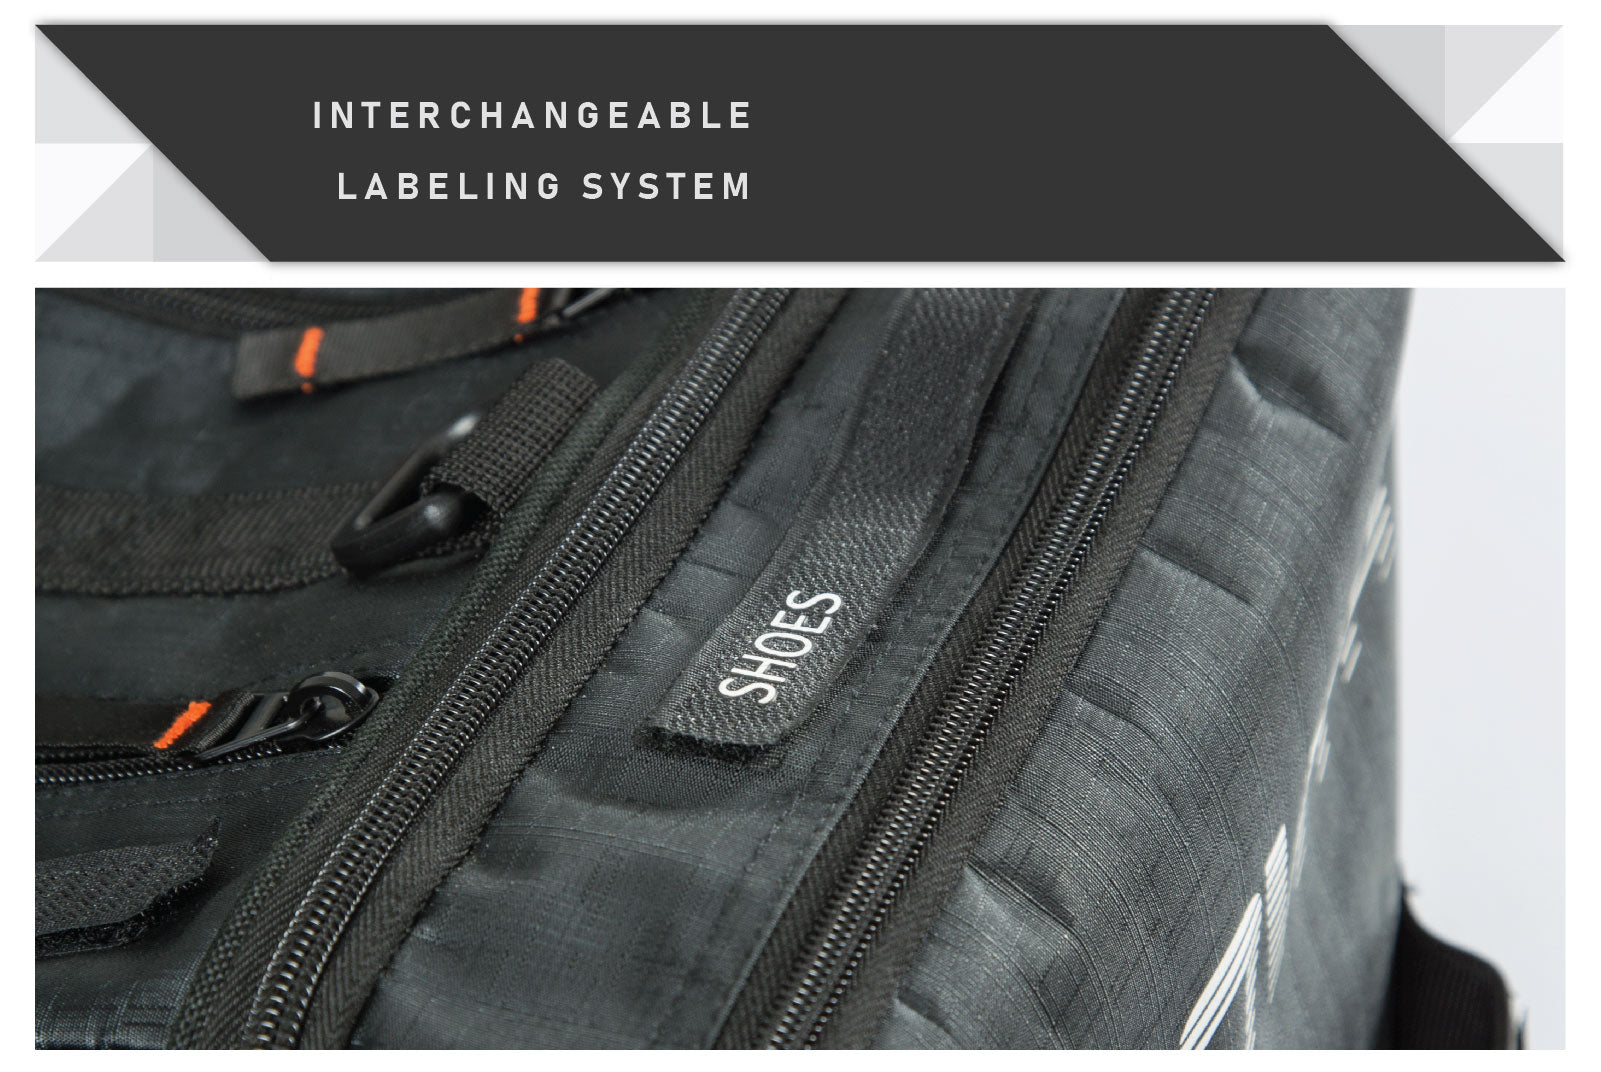 Cycling kit bag with interchangeable labels